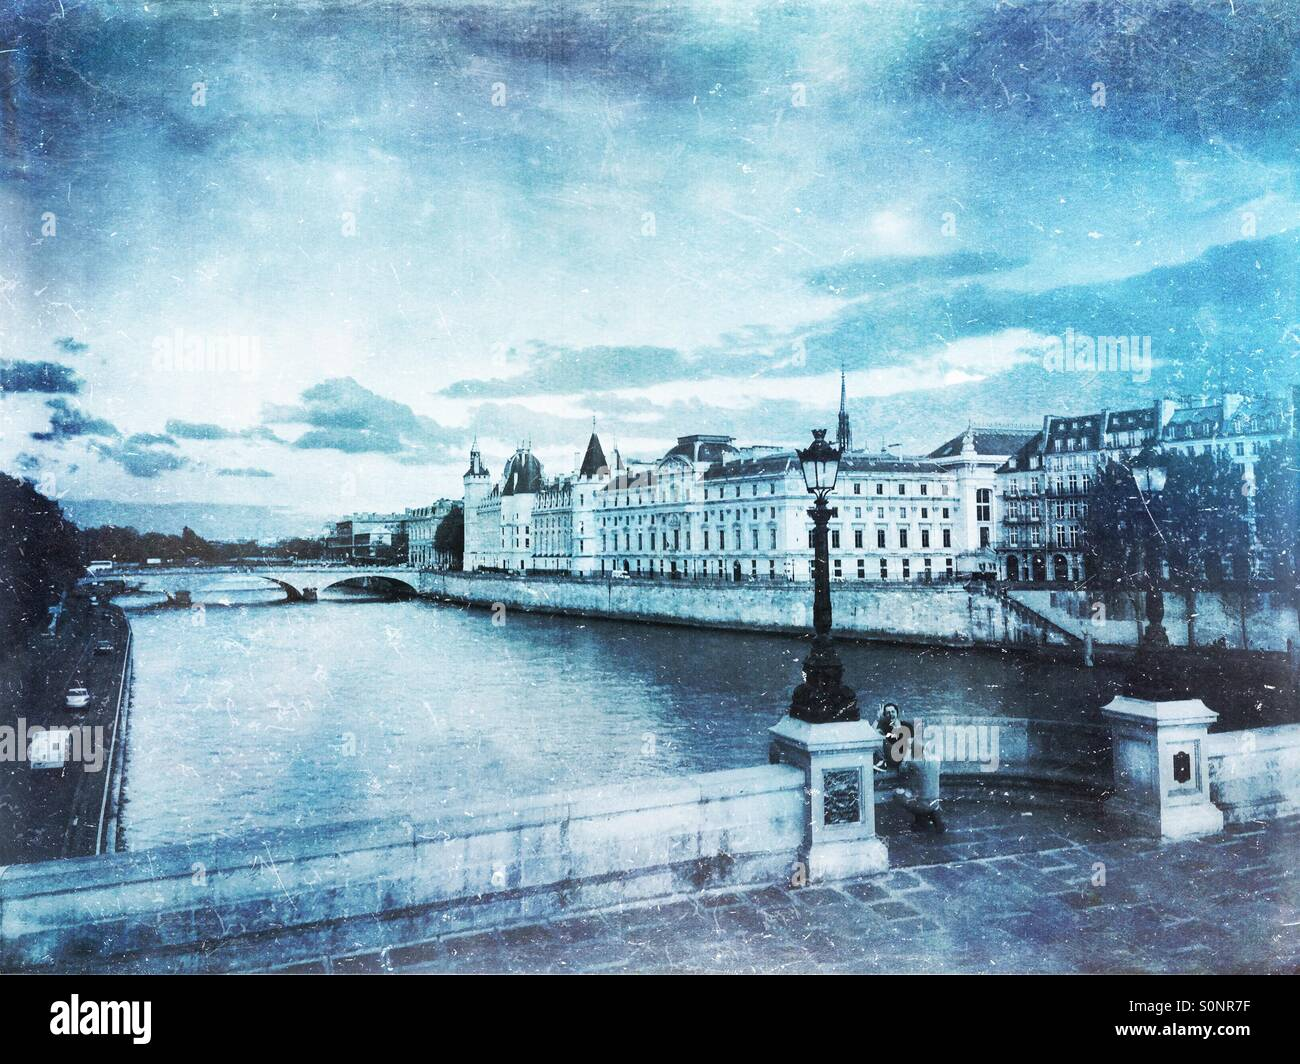 View of the Conciergerie on Ile de la Cite from across Seine River on the Louvre Quay. Frosty, winter-inspired vintage Stock Photo